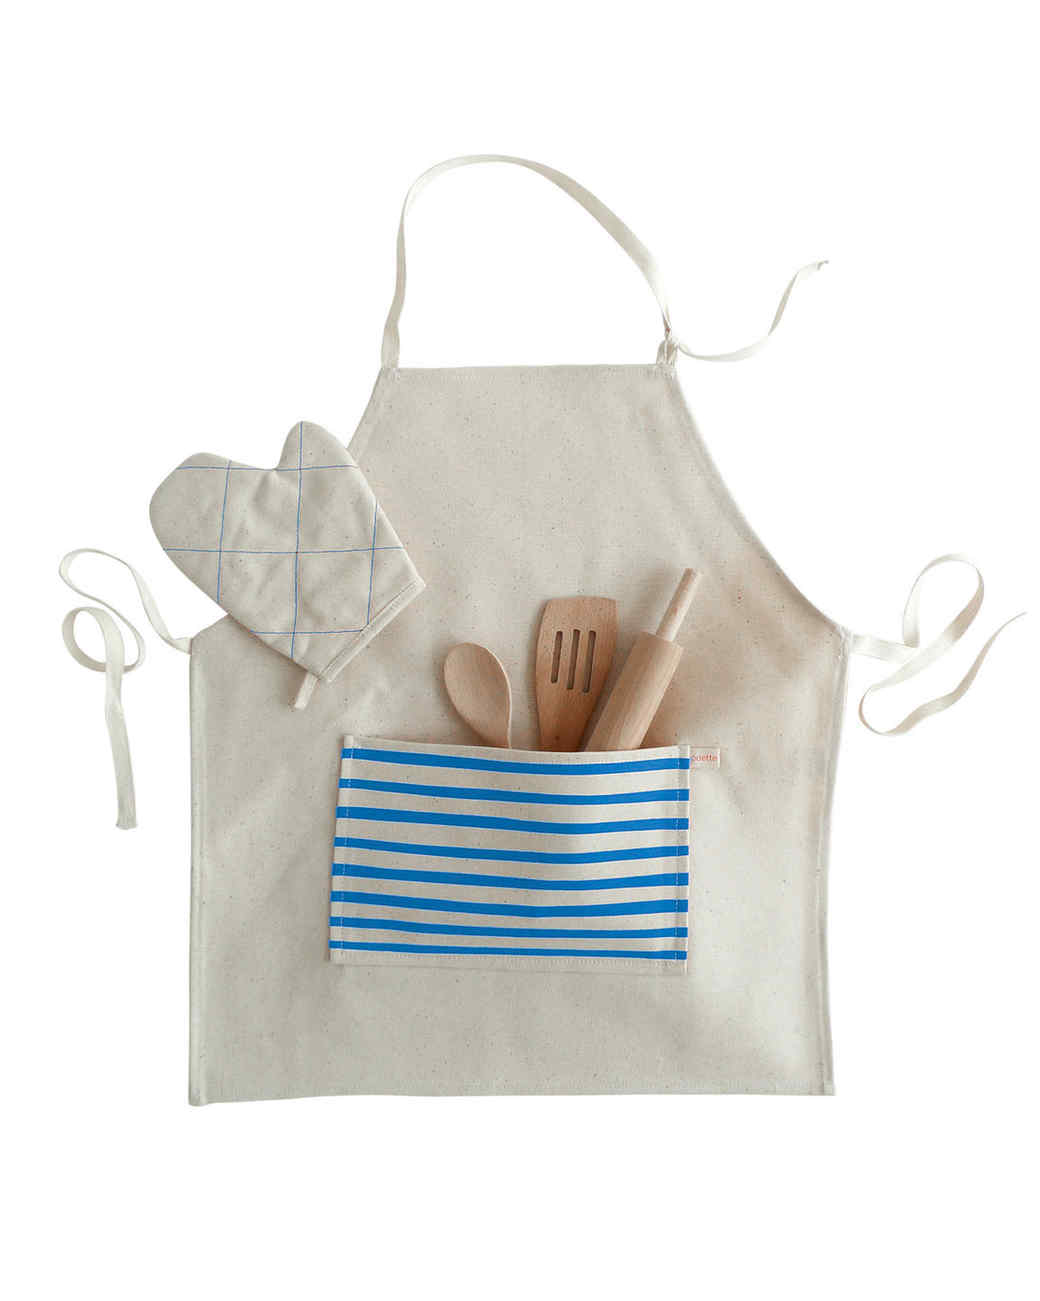 odette-williams-apron-set-0215.jpg